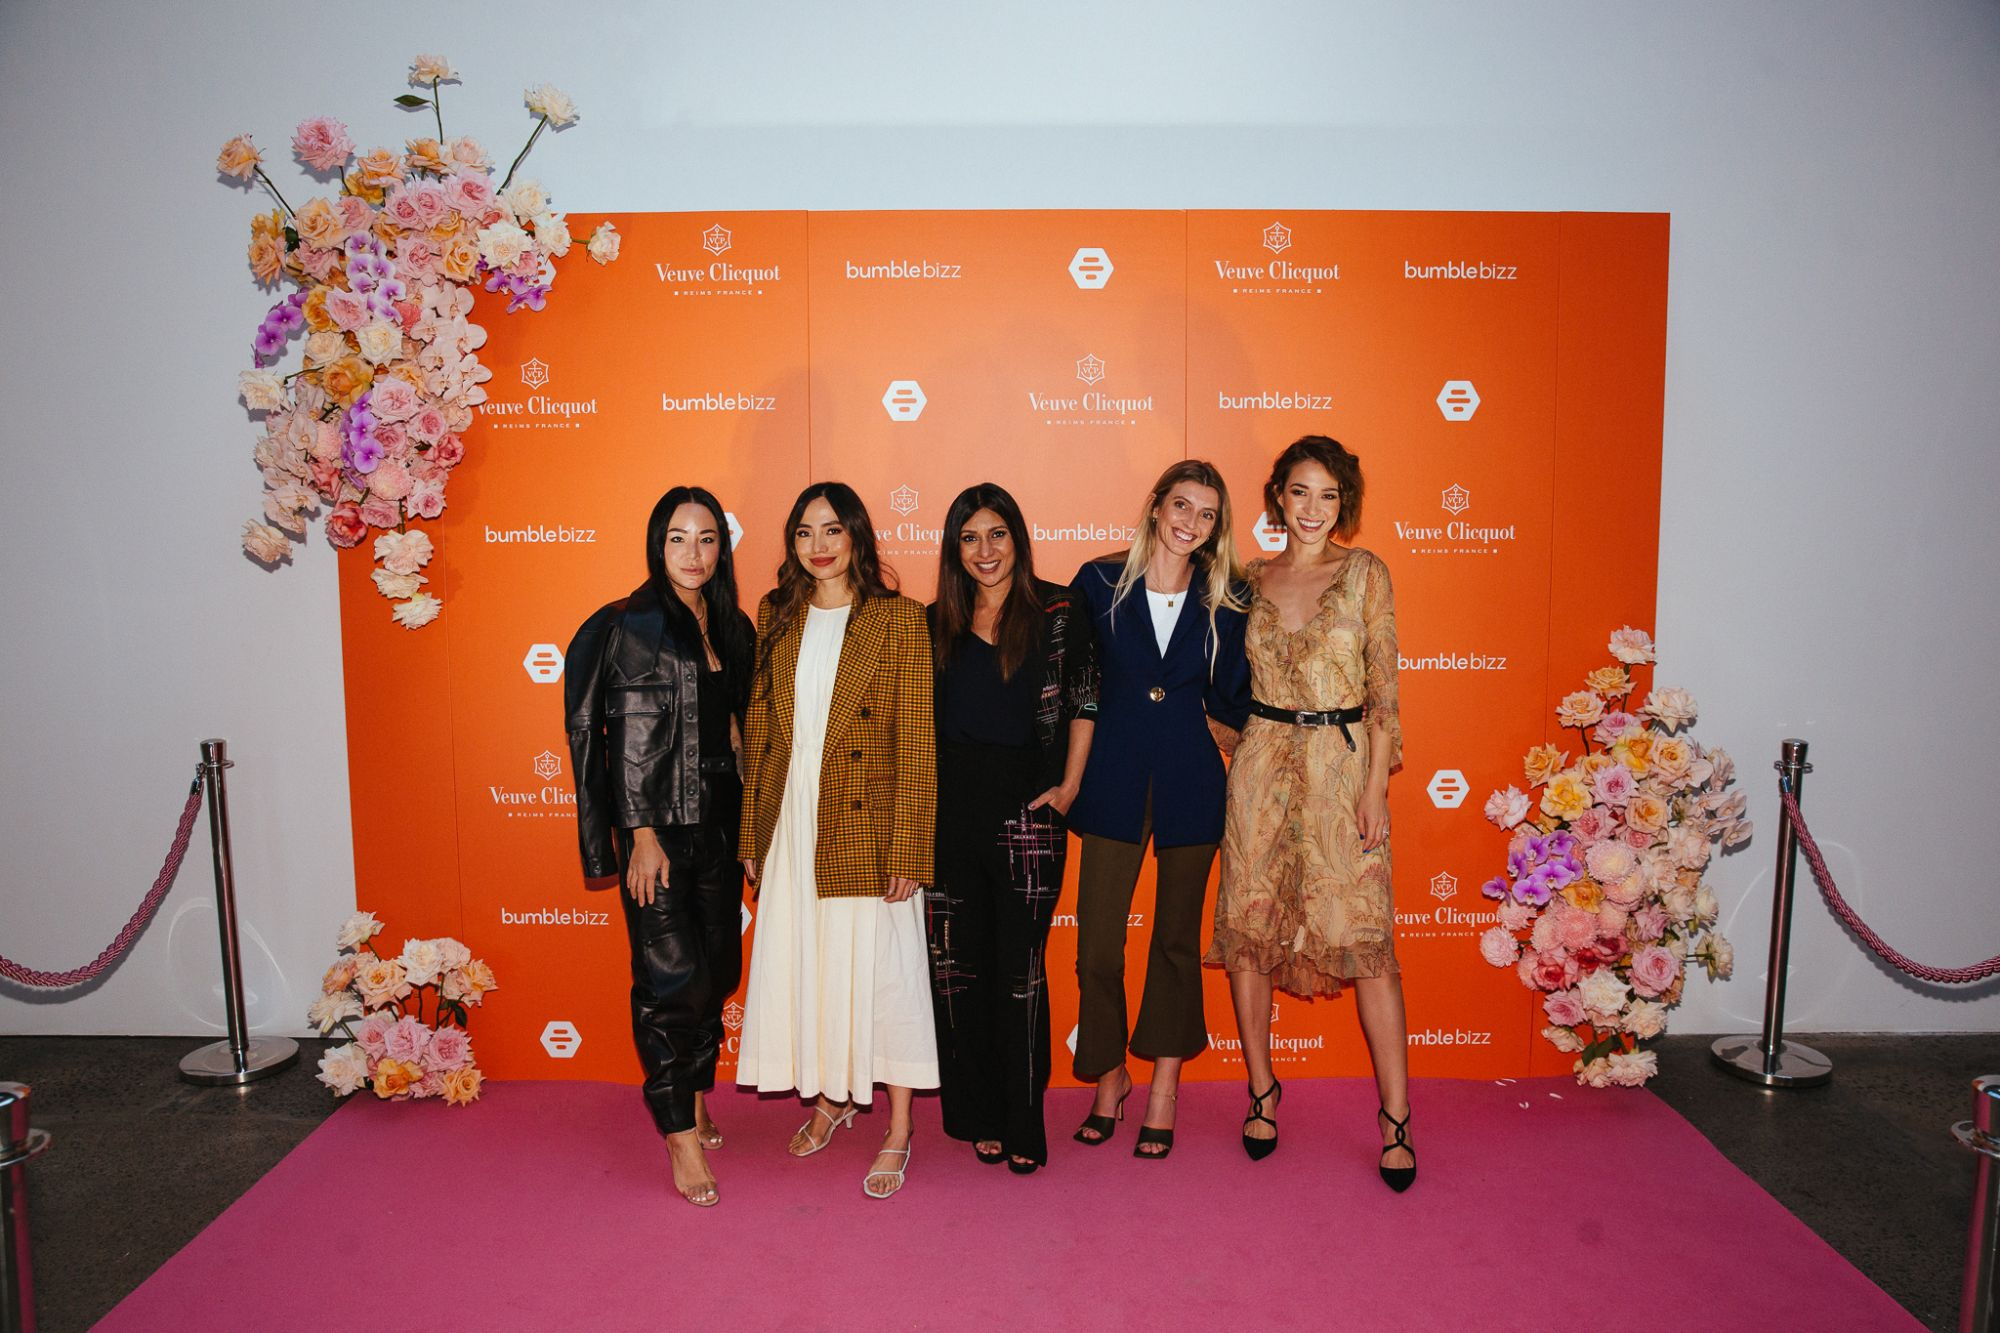 Speakers at the first Bumble Bizz Summit in Asia included Gen.T honourees Lindsay Jang and Martine Ho, entrepreneur and digital influencer Malini Agarwal, fashion designer Maggie Hewitt of Maggie Marilyn, and Liv Lo Golding of FitSphere. Image: Bumble